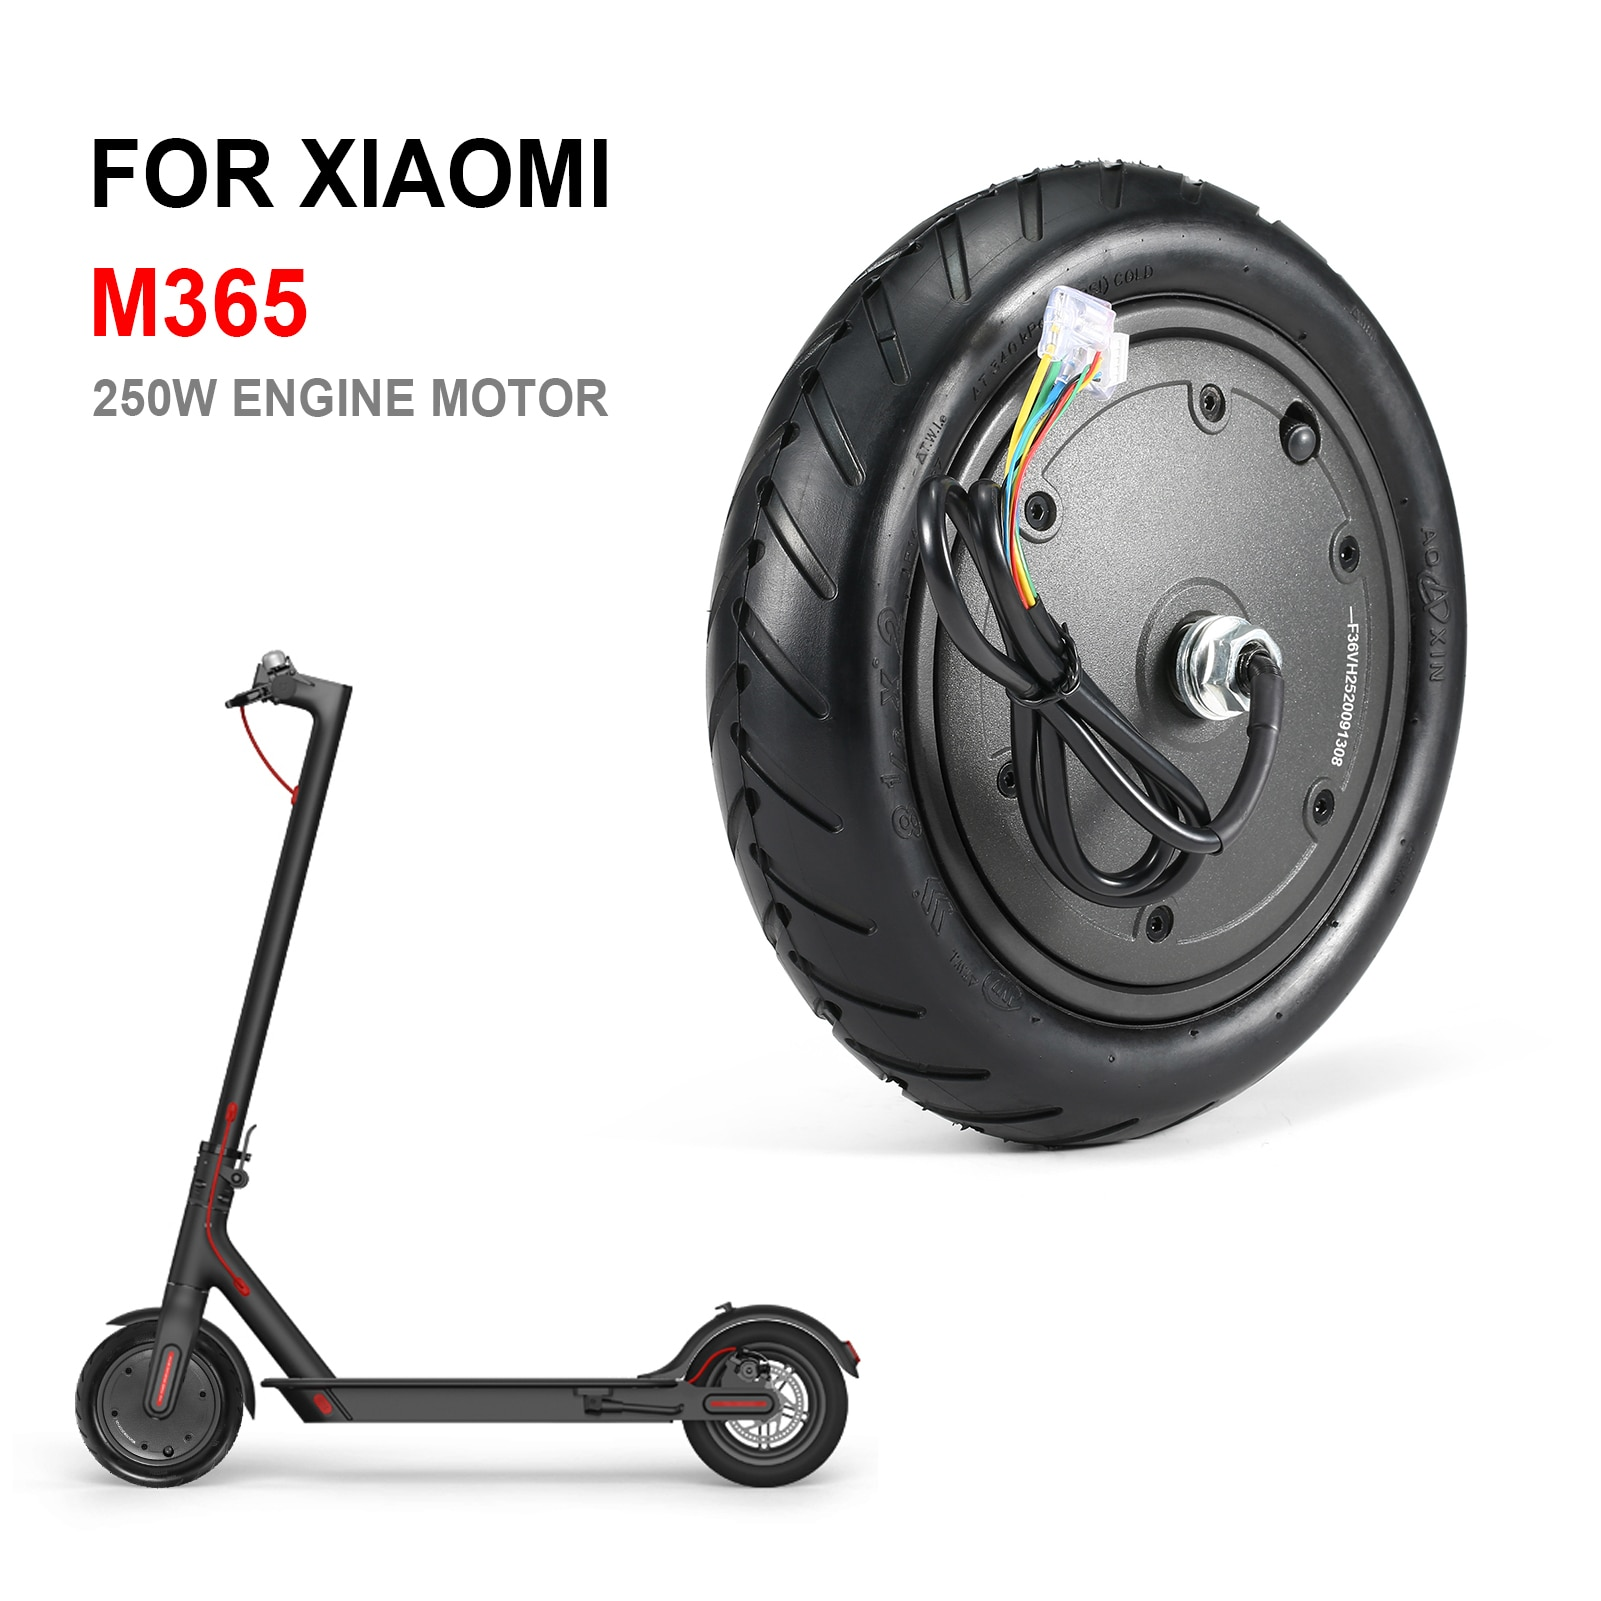 36V 550W Engine Motor For Xiaomi M365/M365 Pro Smart Electric Scooter 8.5 Inch Wheel Replacement Par